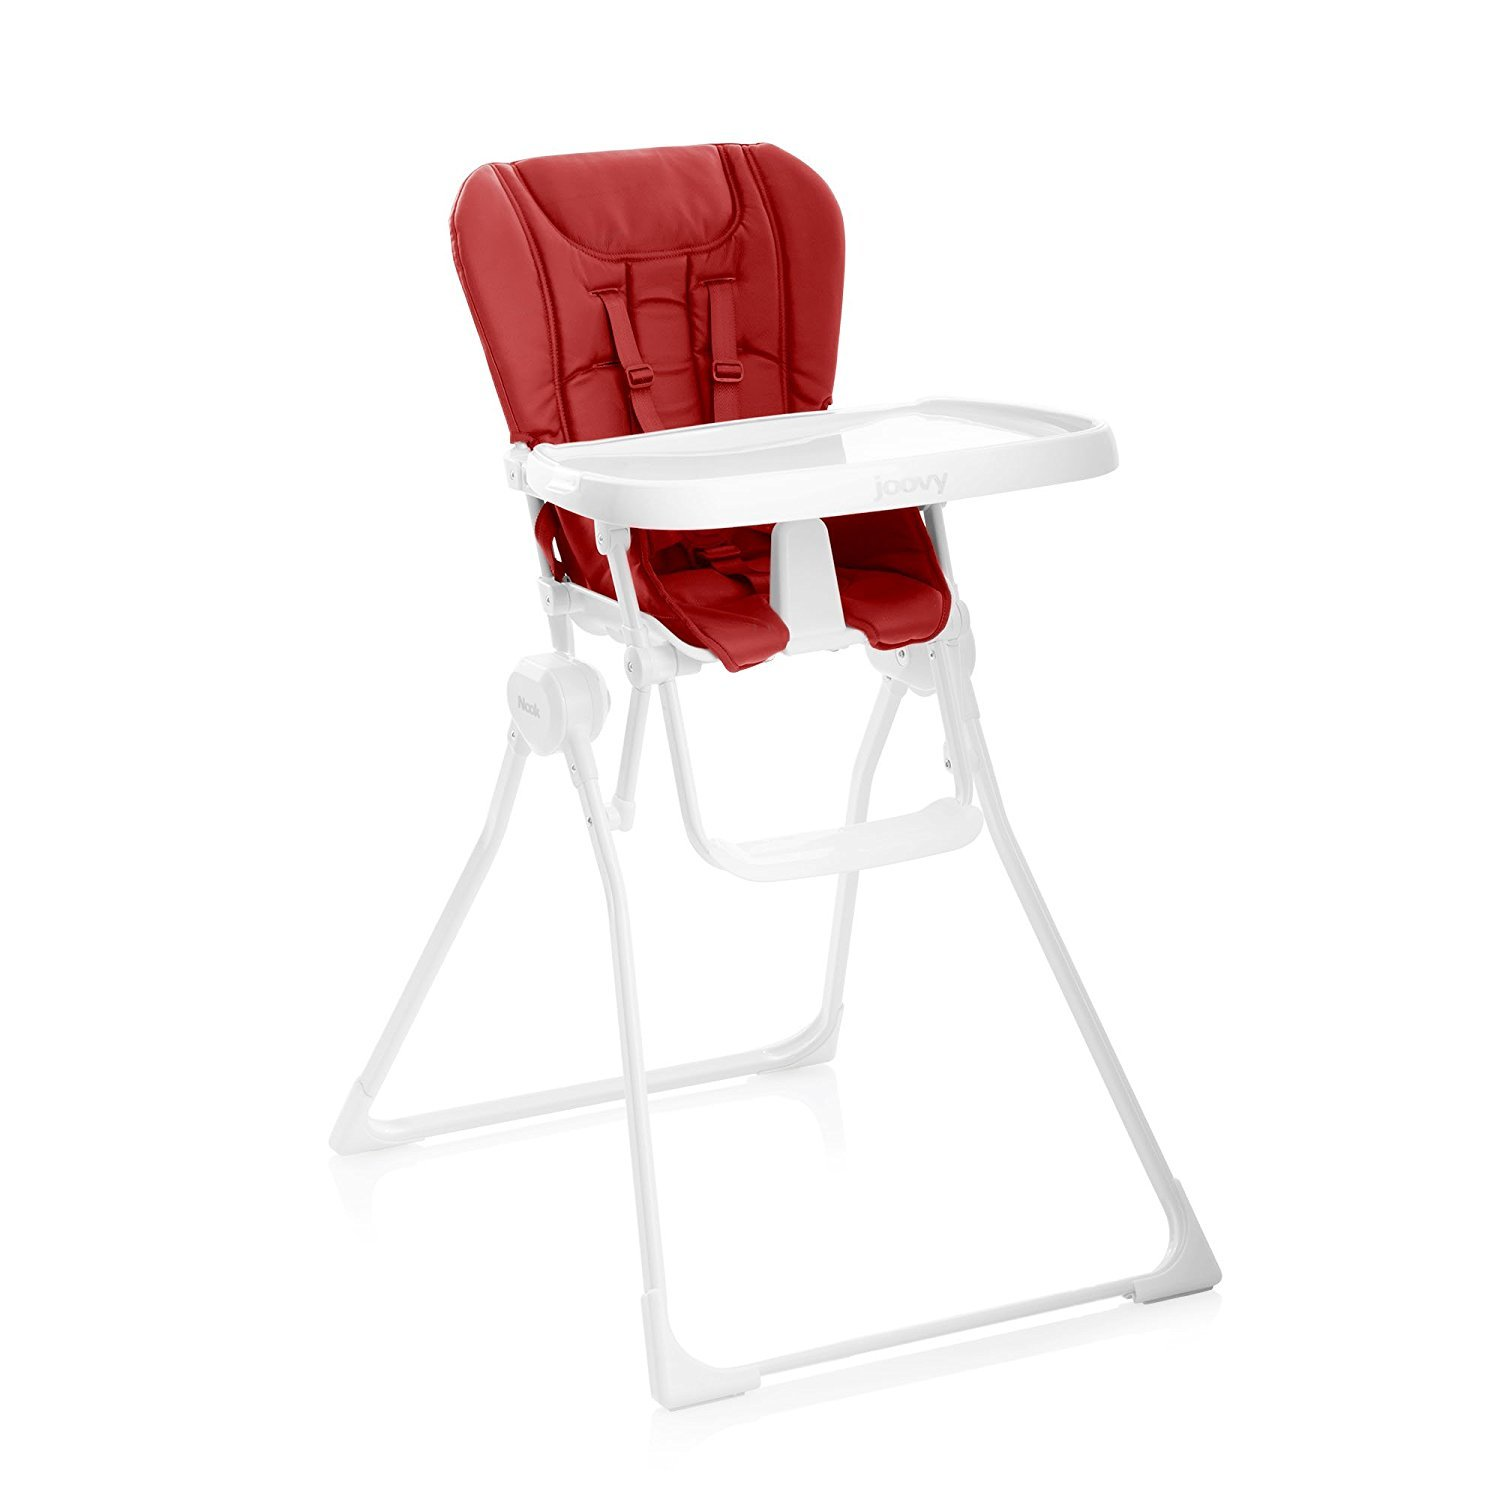 JOOVY Nook High Chair ハイチェア (並行輸入品) B07BT77SYJ  Red One Size